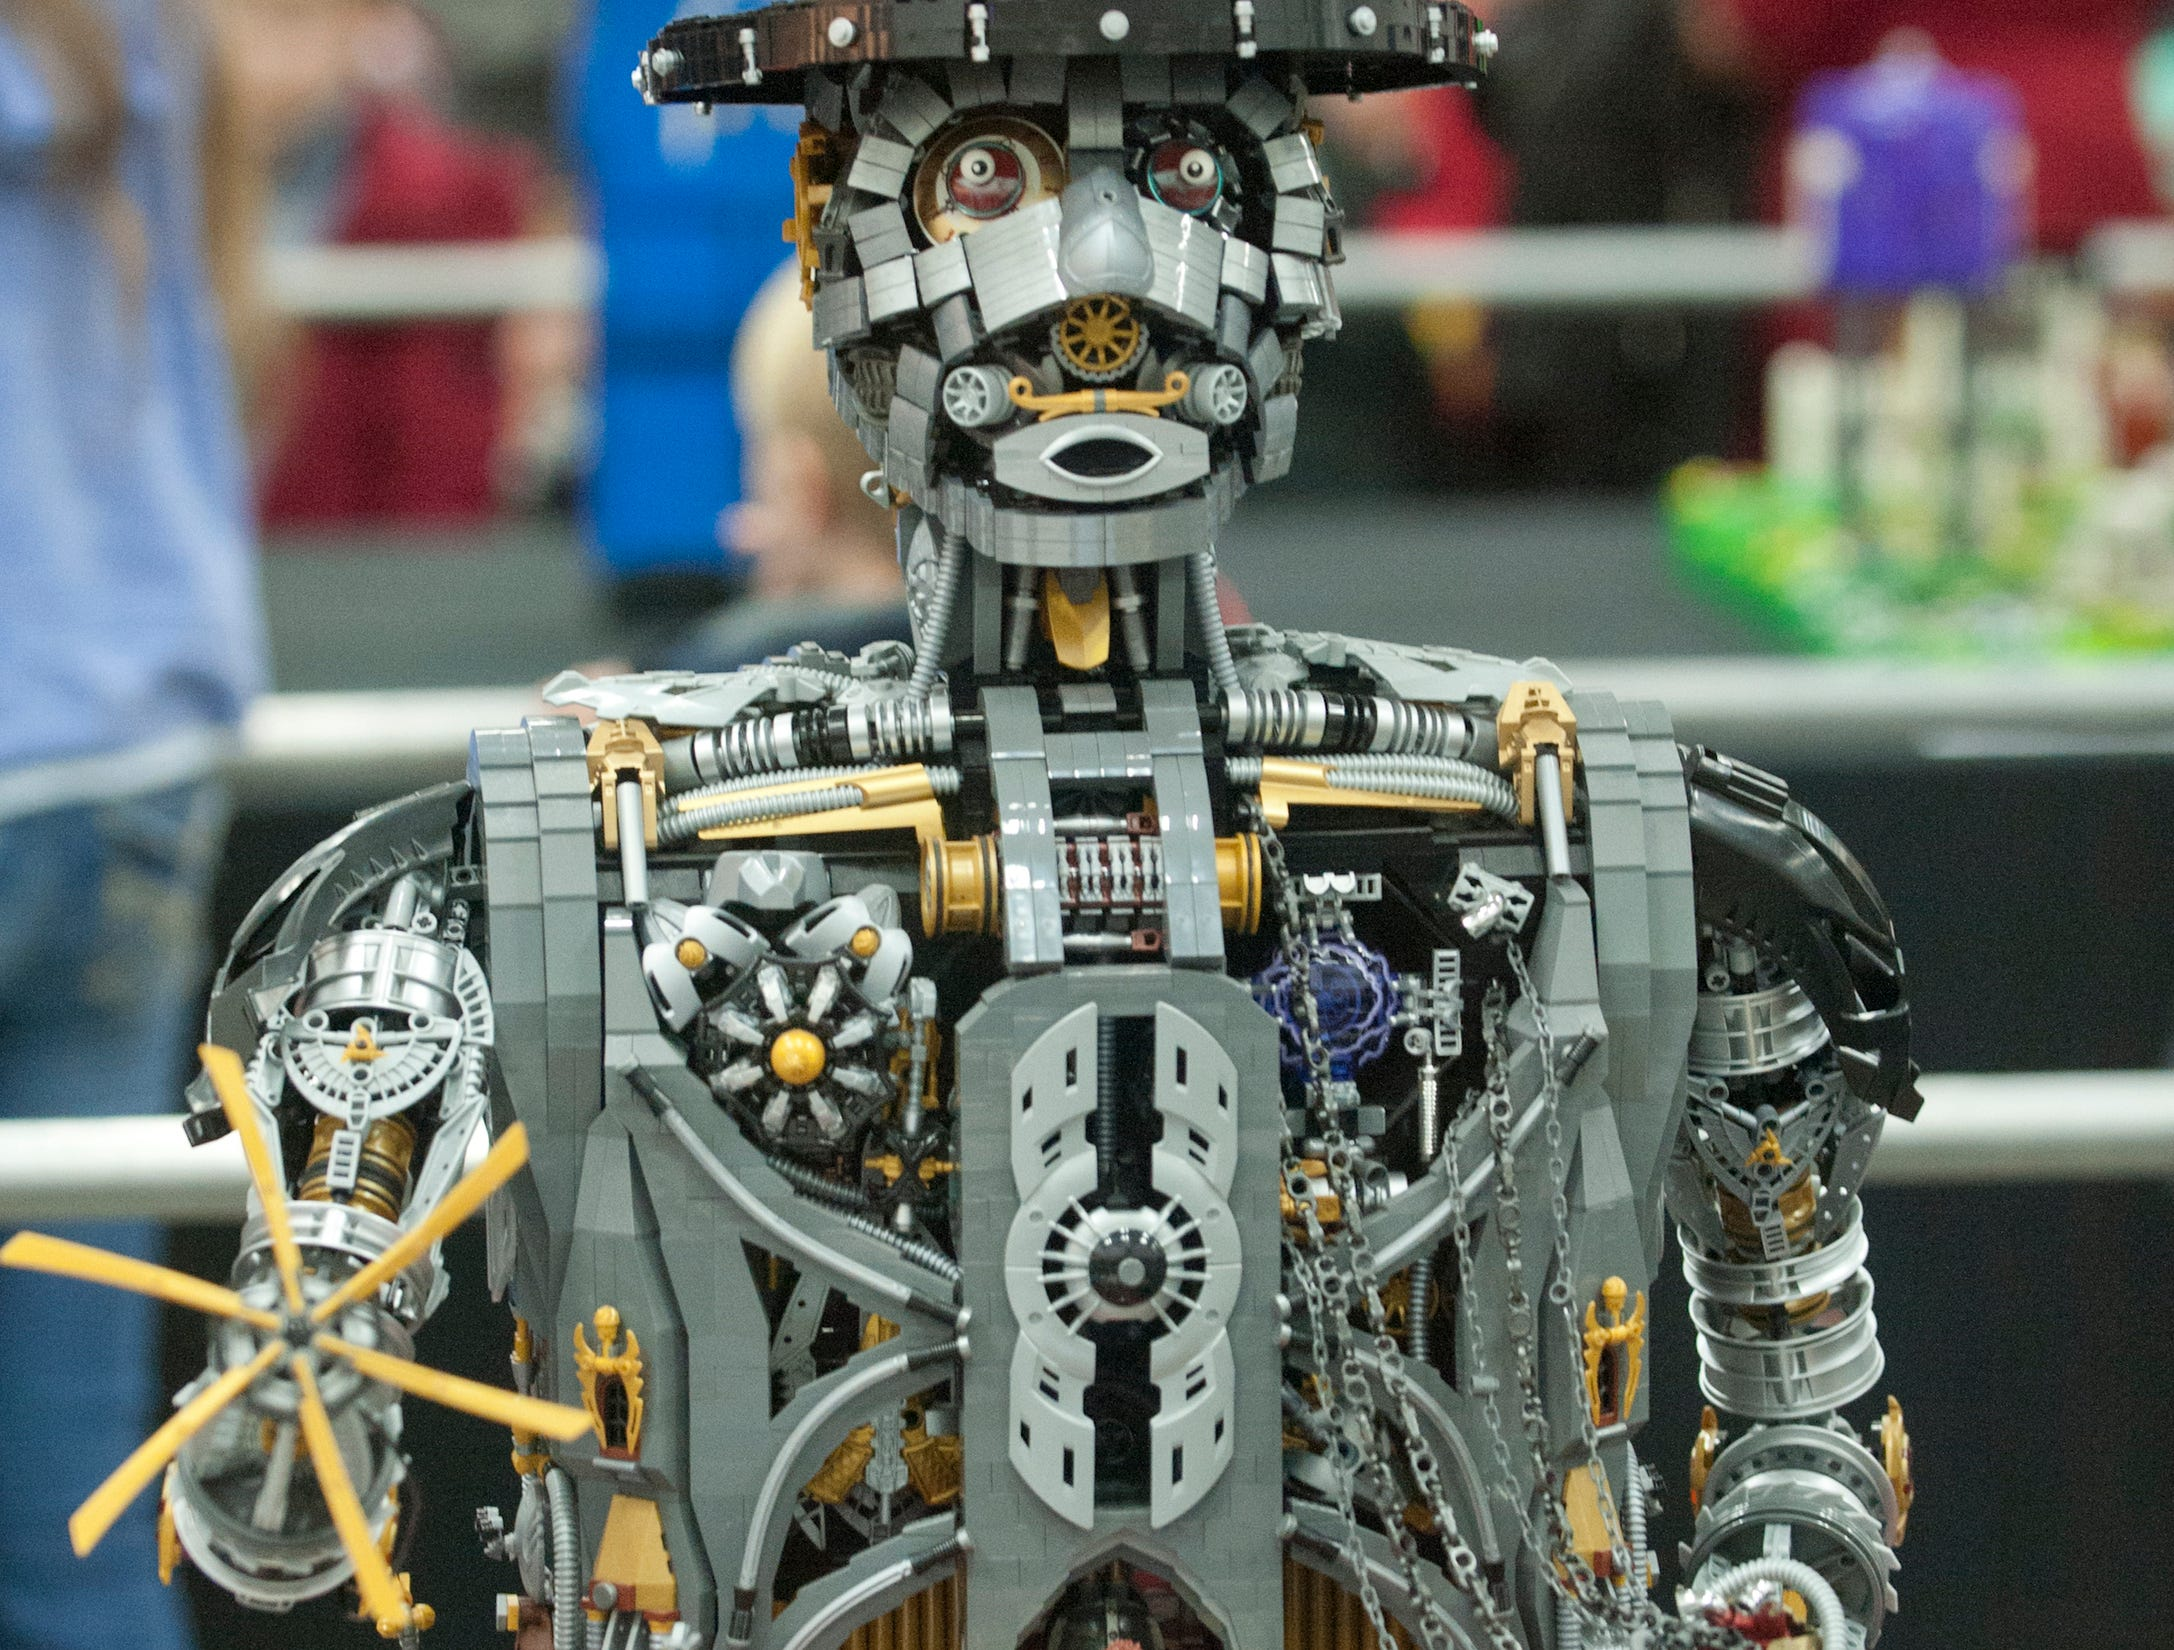 """This steam punk robot made of Legos entitled """"Unchain My Heart"""" was created by Paul Hetherington and is on display at the BrickUniverse Lego Fan Convention at the Kentucky International Convention Center in downtown Louisville. It took Hetherington 18,300  bricks and 230 hours to create the piece of art.19 January 2019"""